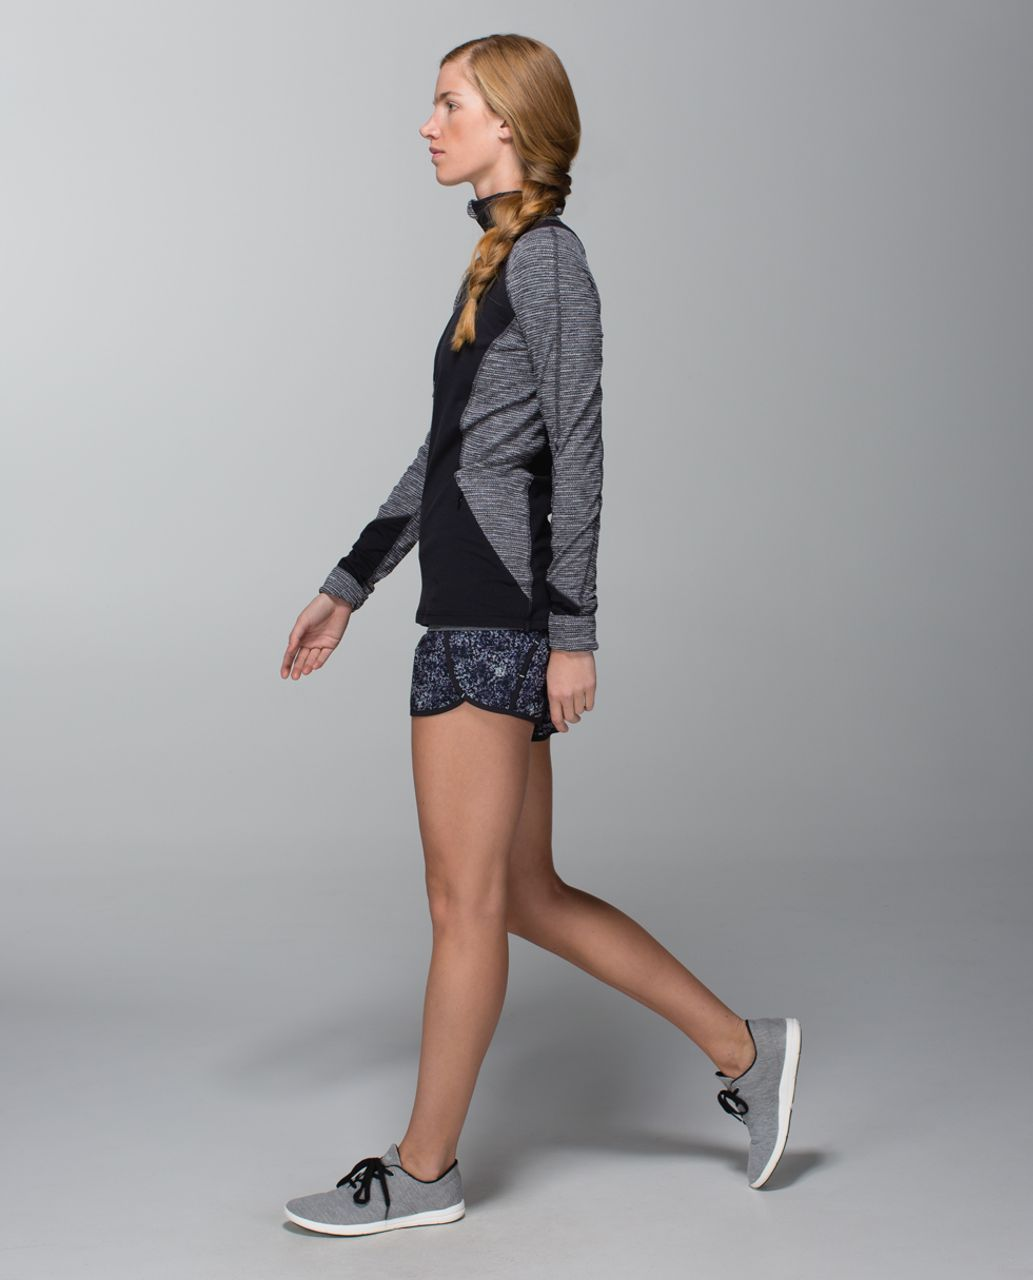 Lululemon Run Times Short *4-way Stretch - Rocky Road Sand Dune Toothpaste / Black / Toothpaste